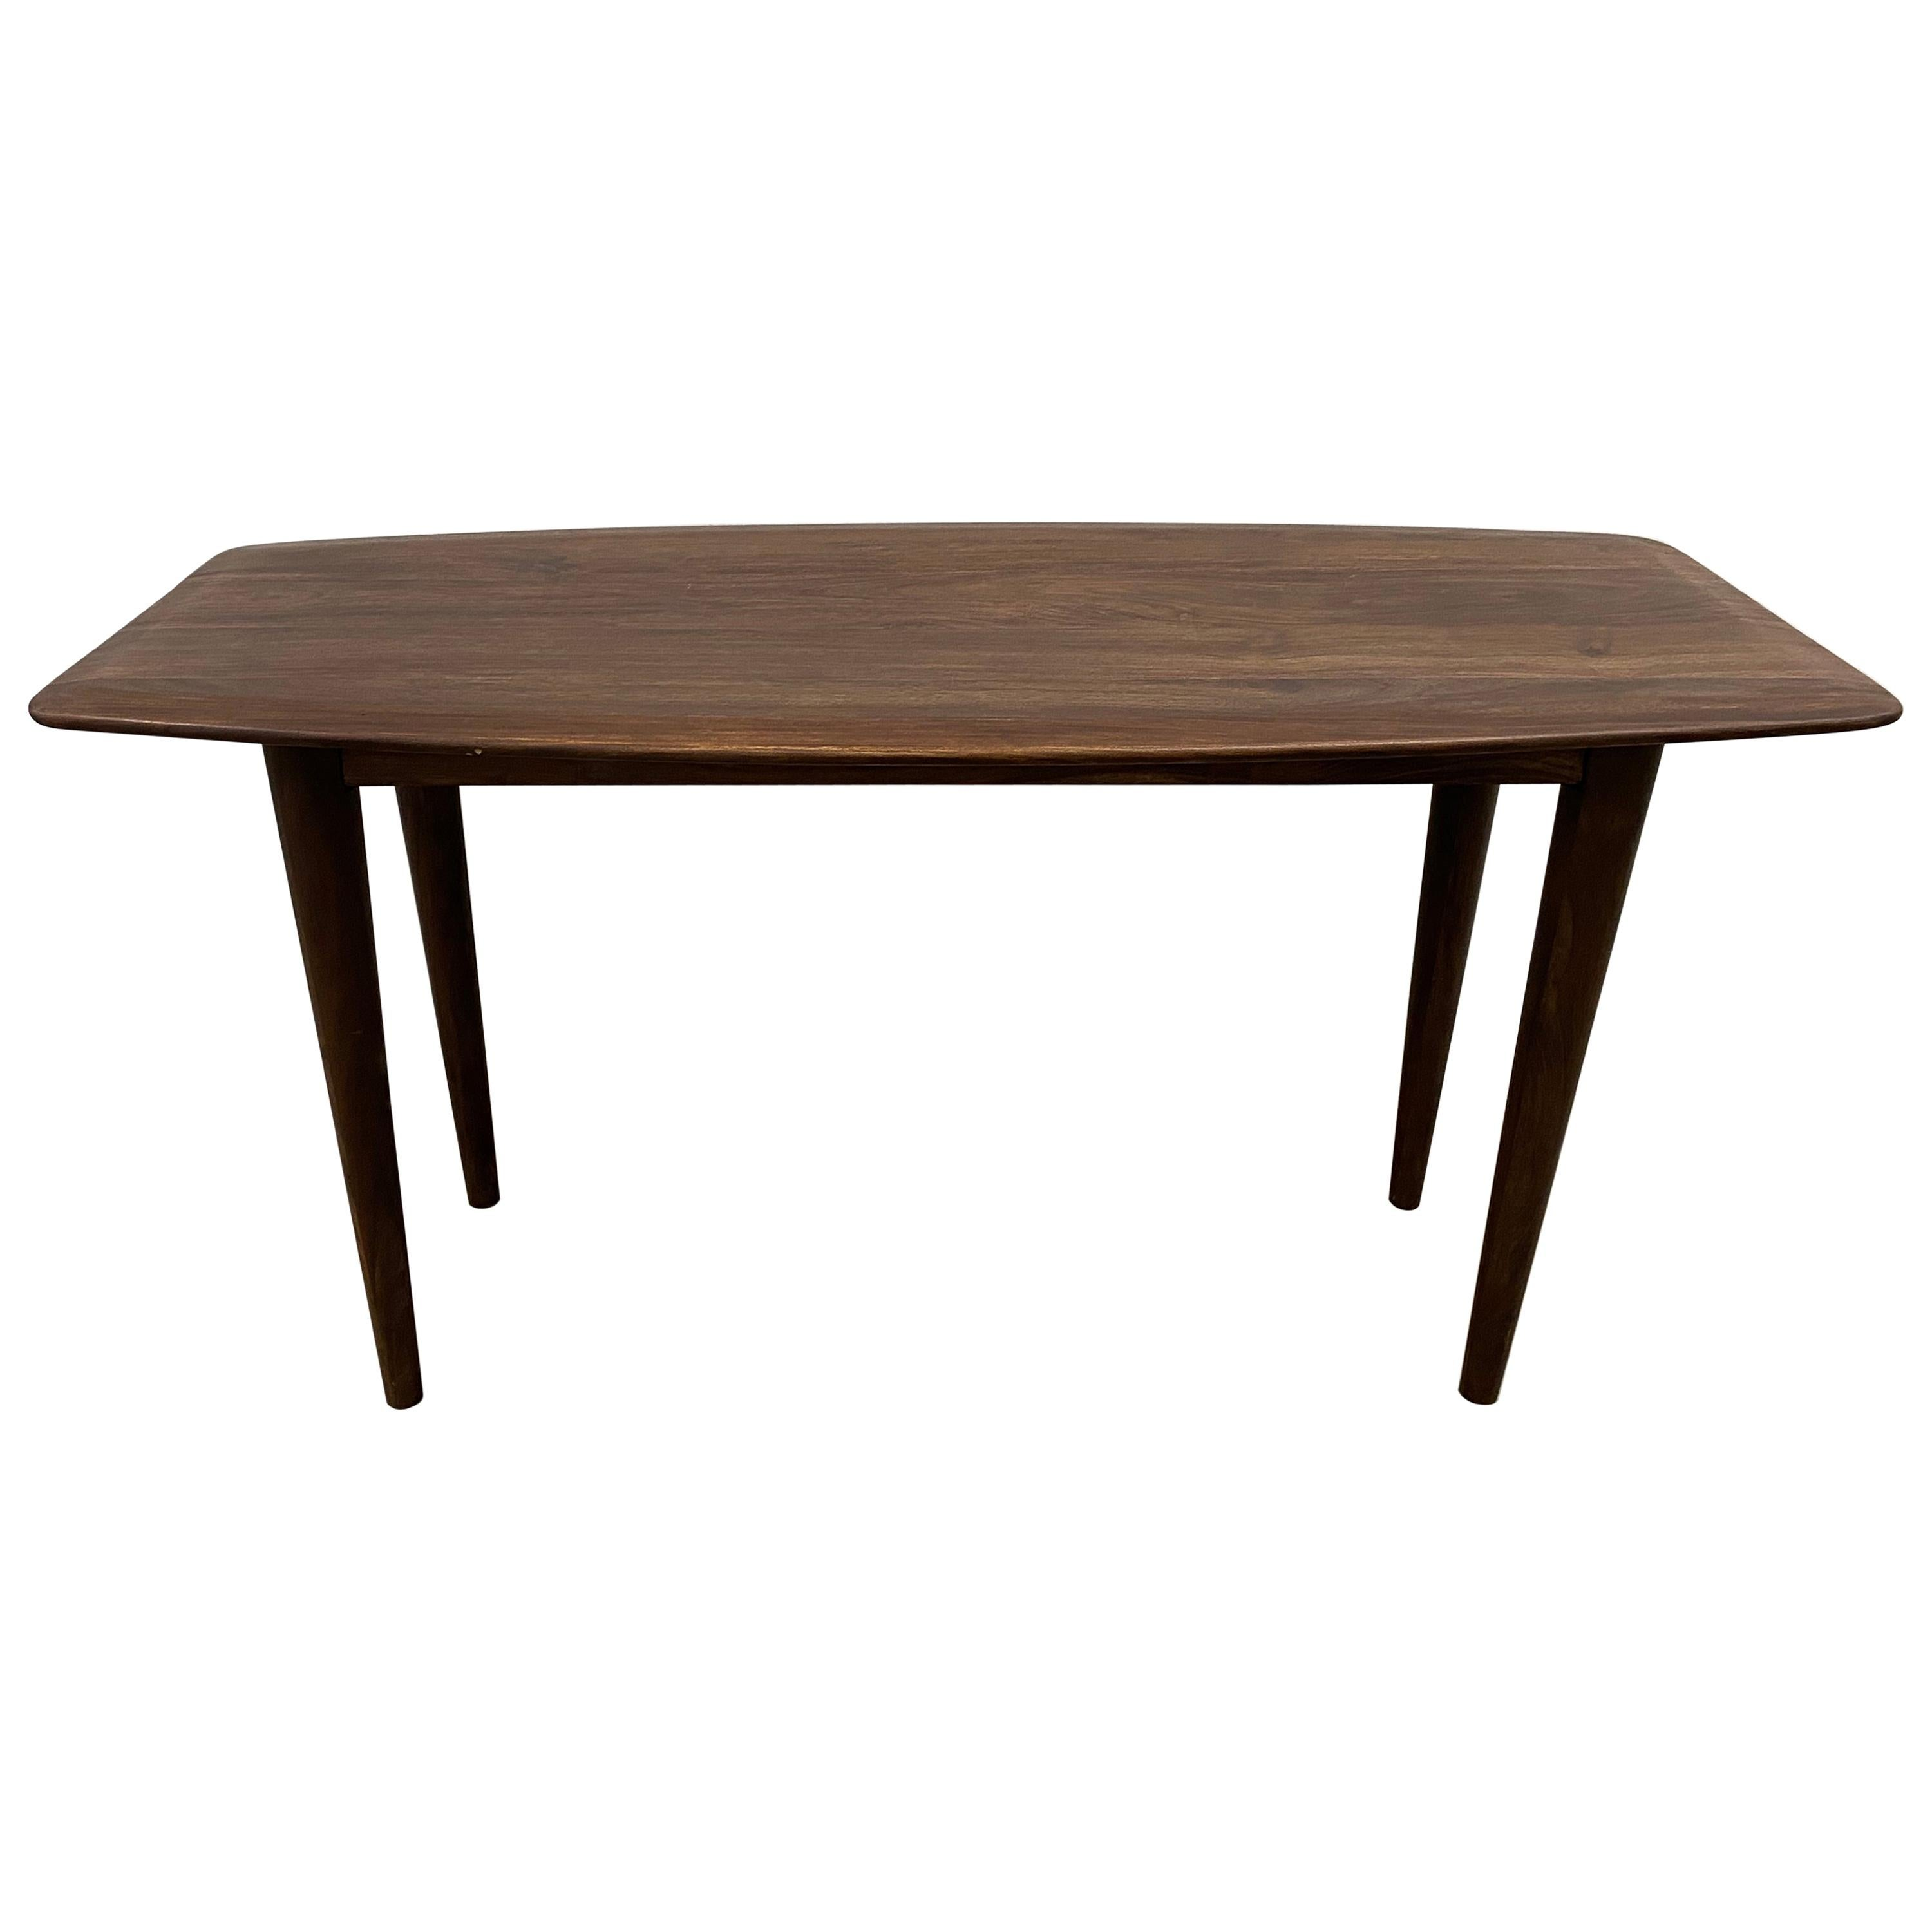 Contemporary Walnut Table for Console, Dining, or Desk